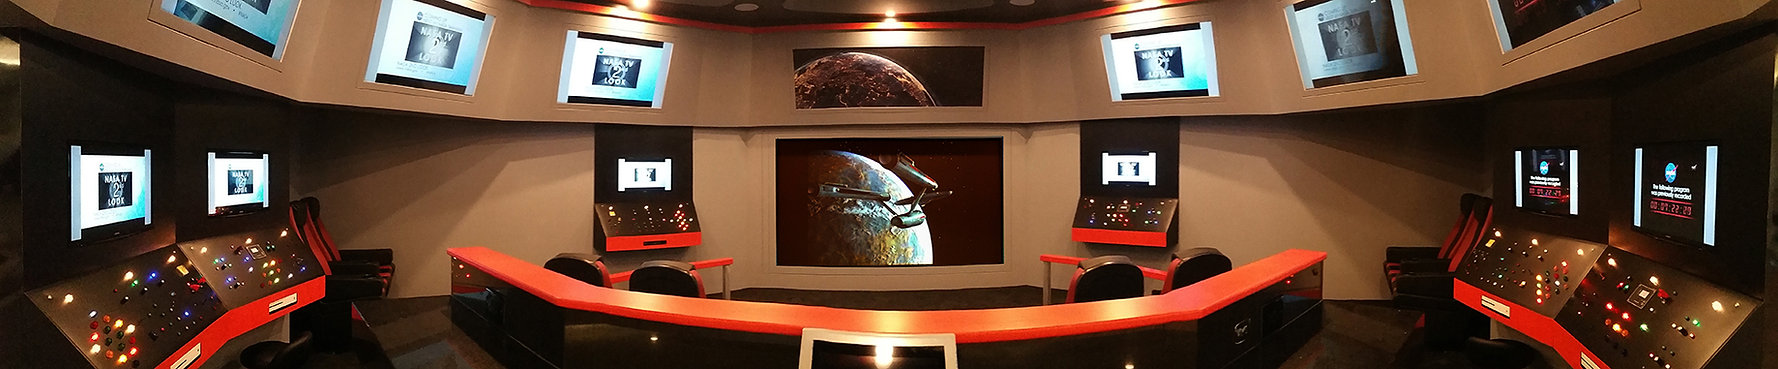 Star Trek Theater Panoramic-small.jpg